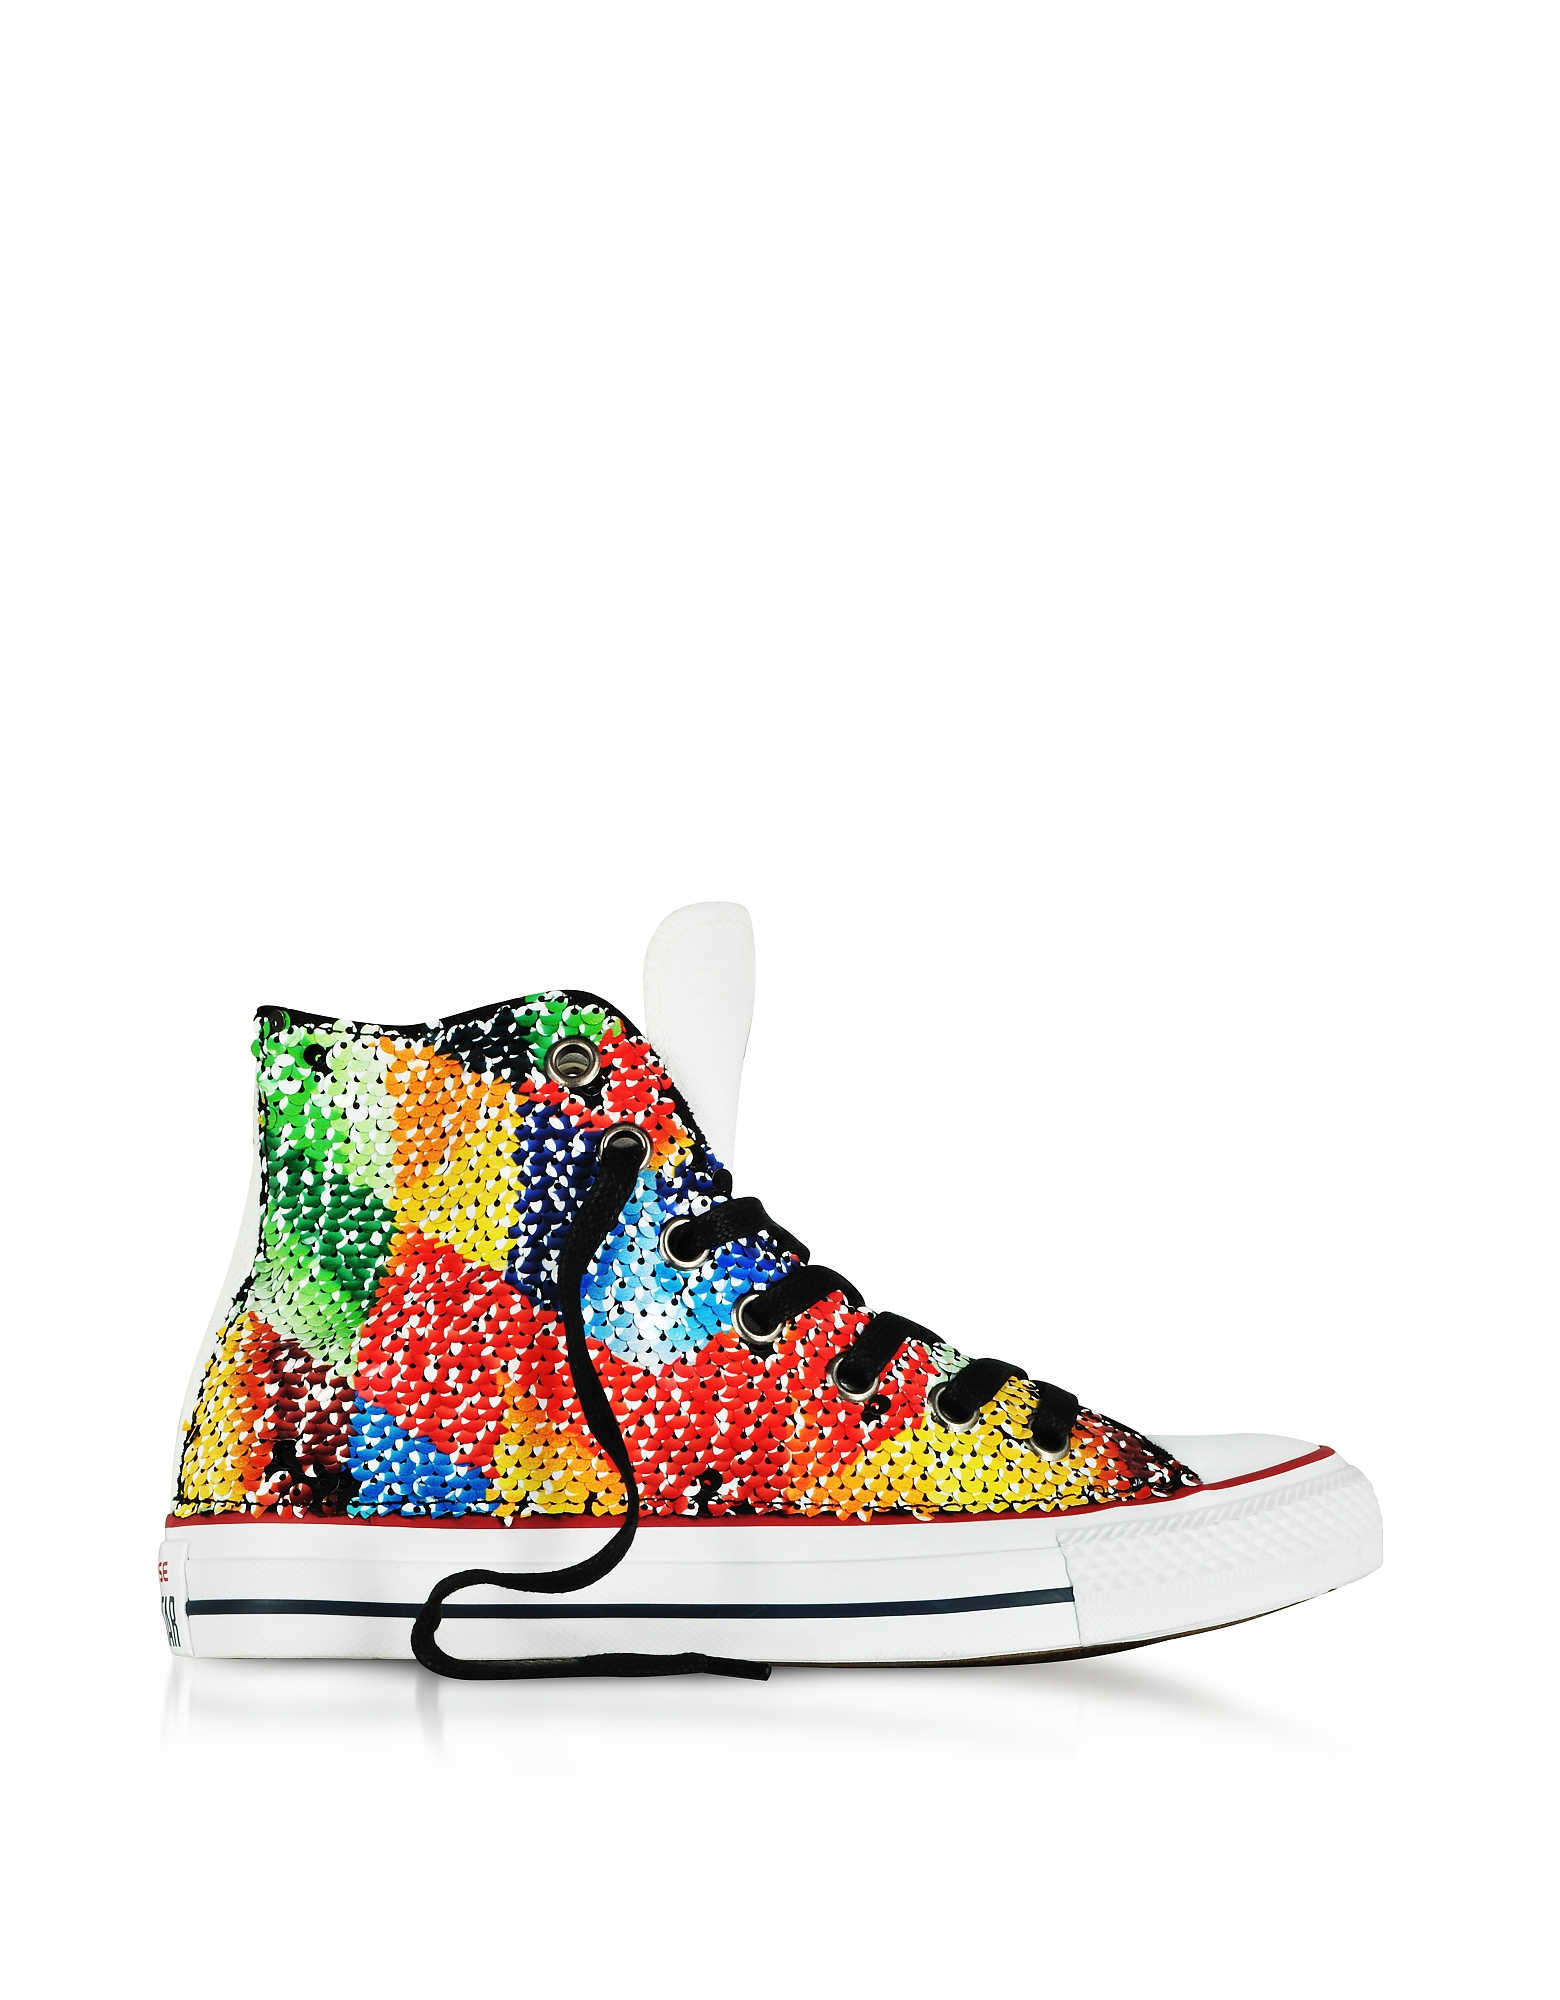 Converse Limited Edition Shoes, Chuck Taylor All Star High Top Sequins and Canvas Women's Sneakers